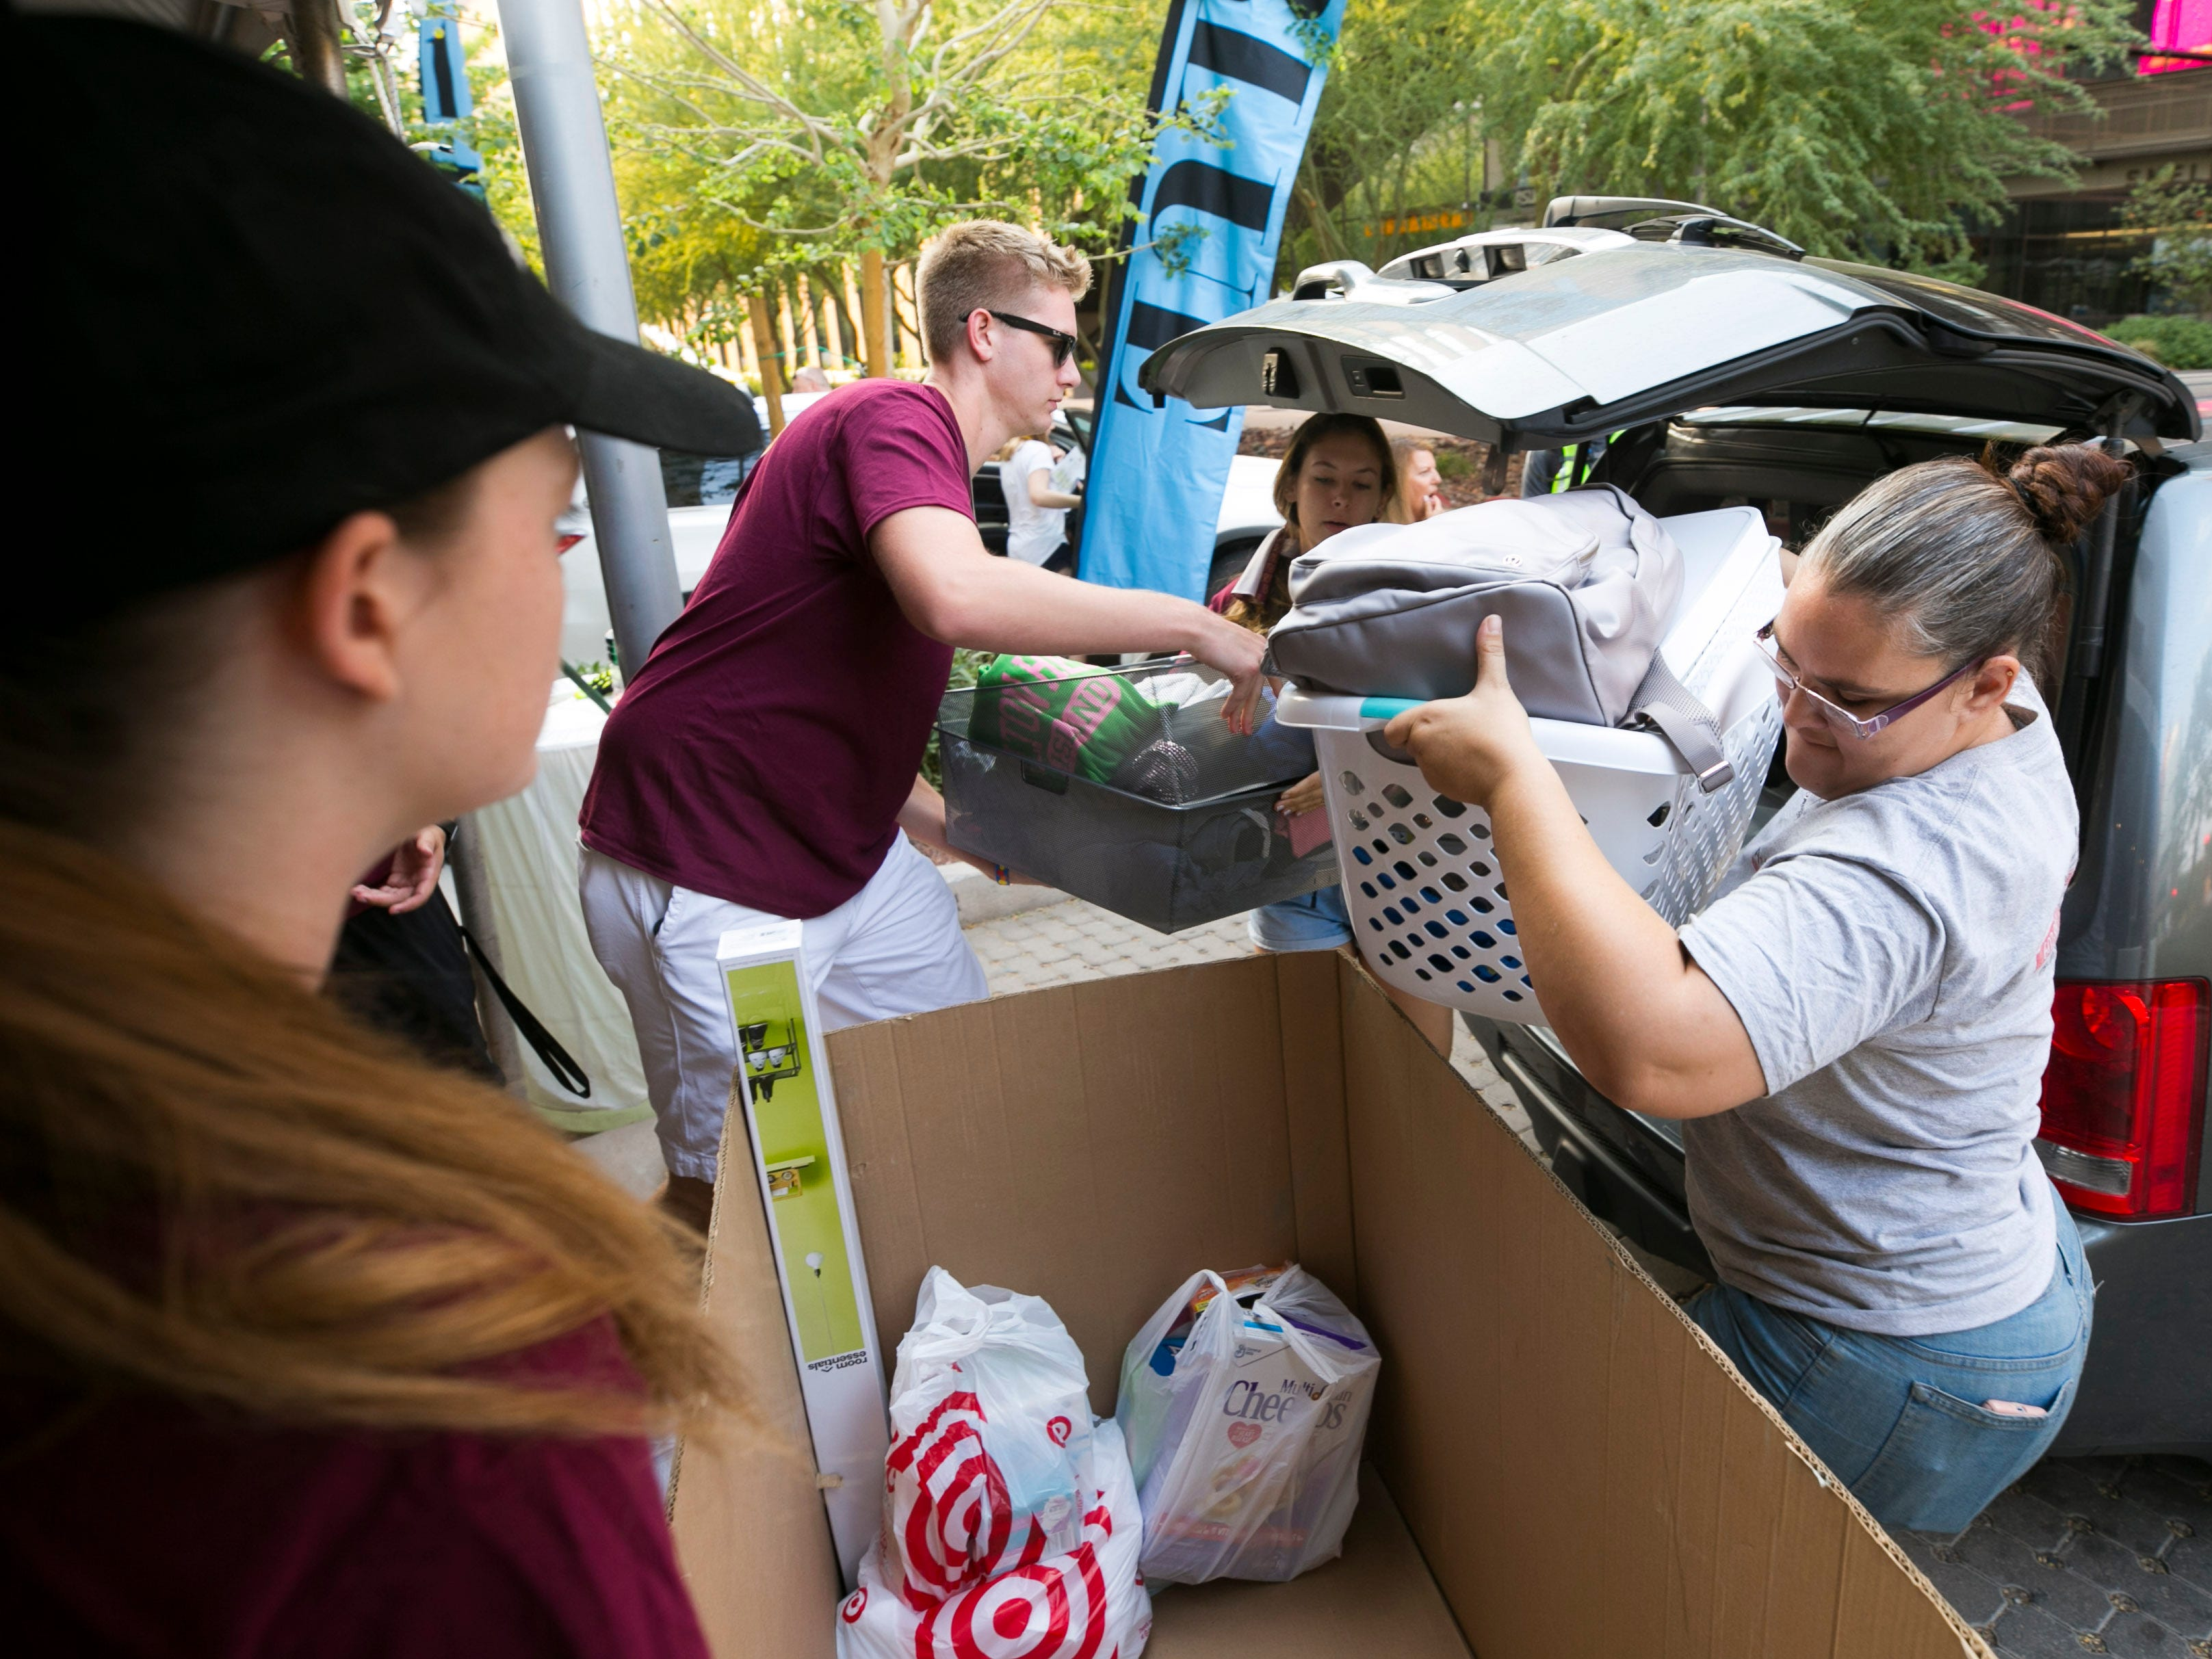 ASU move-in day is underway at the Taylor Place dorm on the ASU downtown Phoenix campus on Aug. 10, 2018.